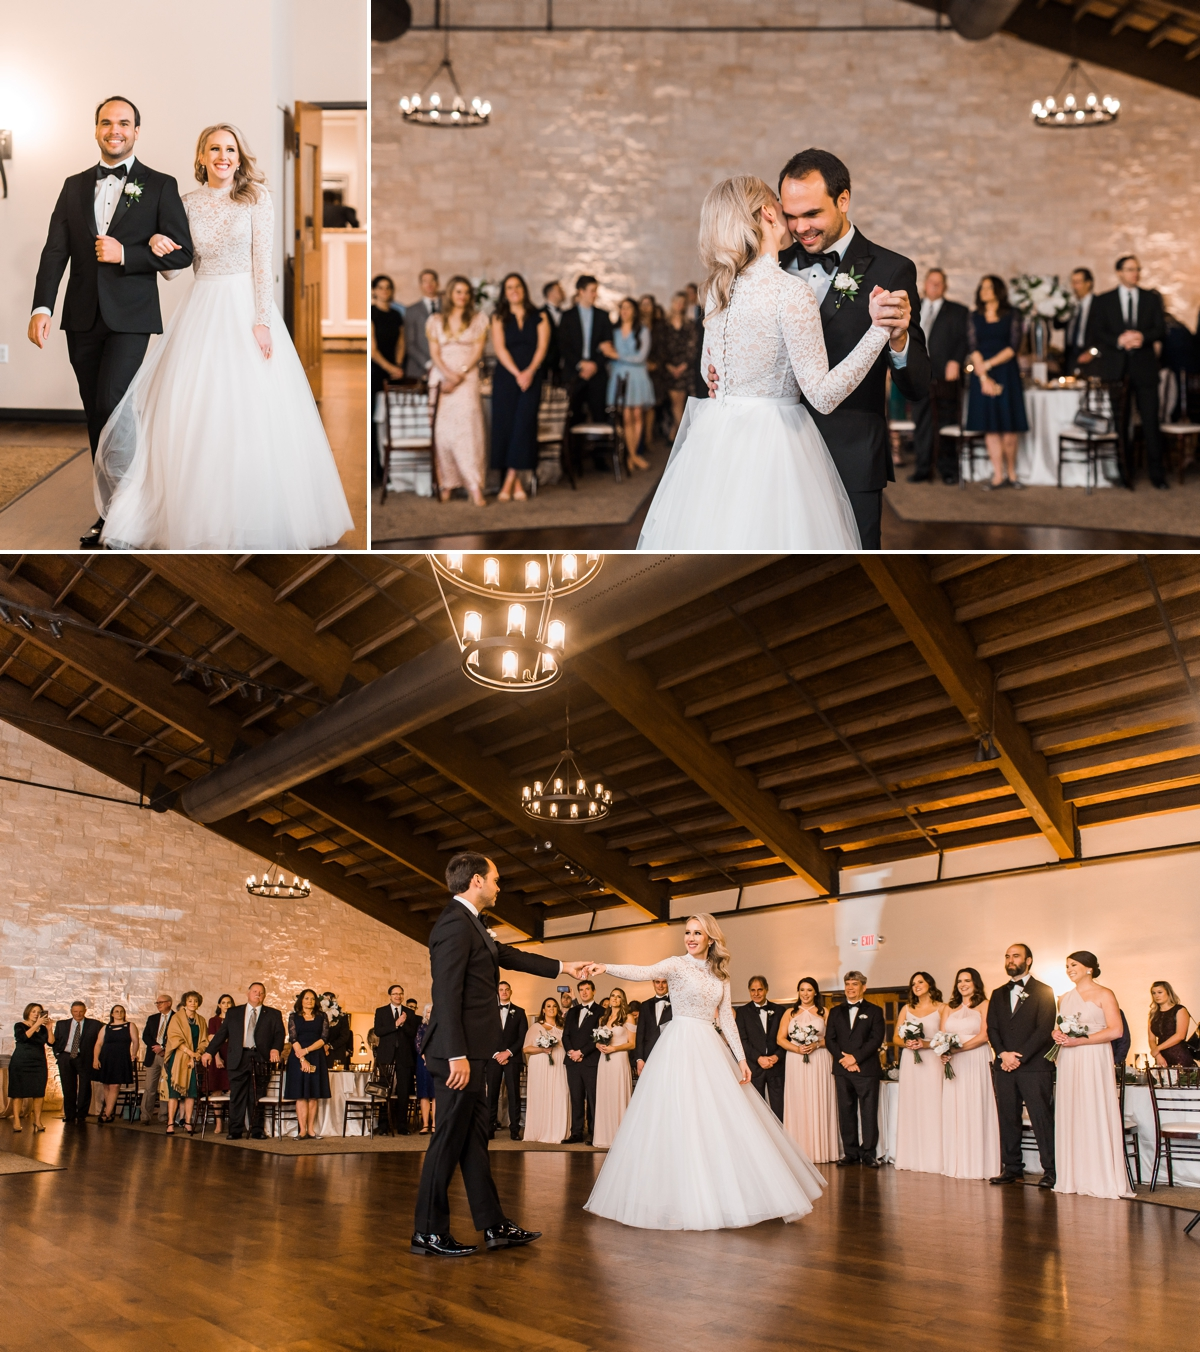 Entrance and First Dance of Bride and Groom at Briscoe Manor Wedding